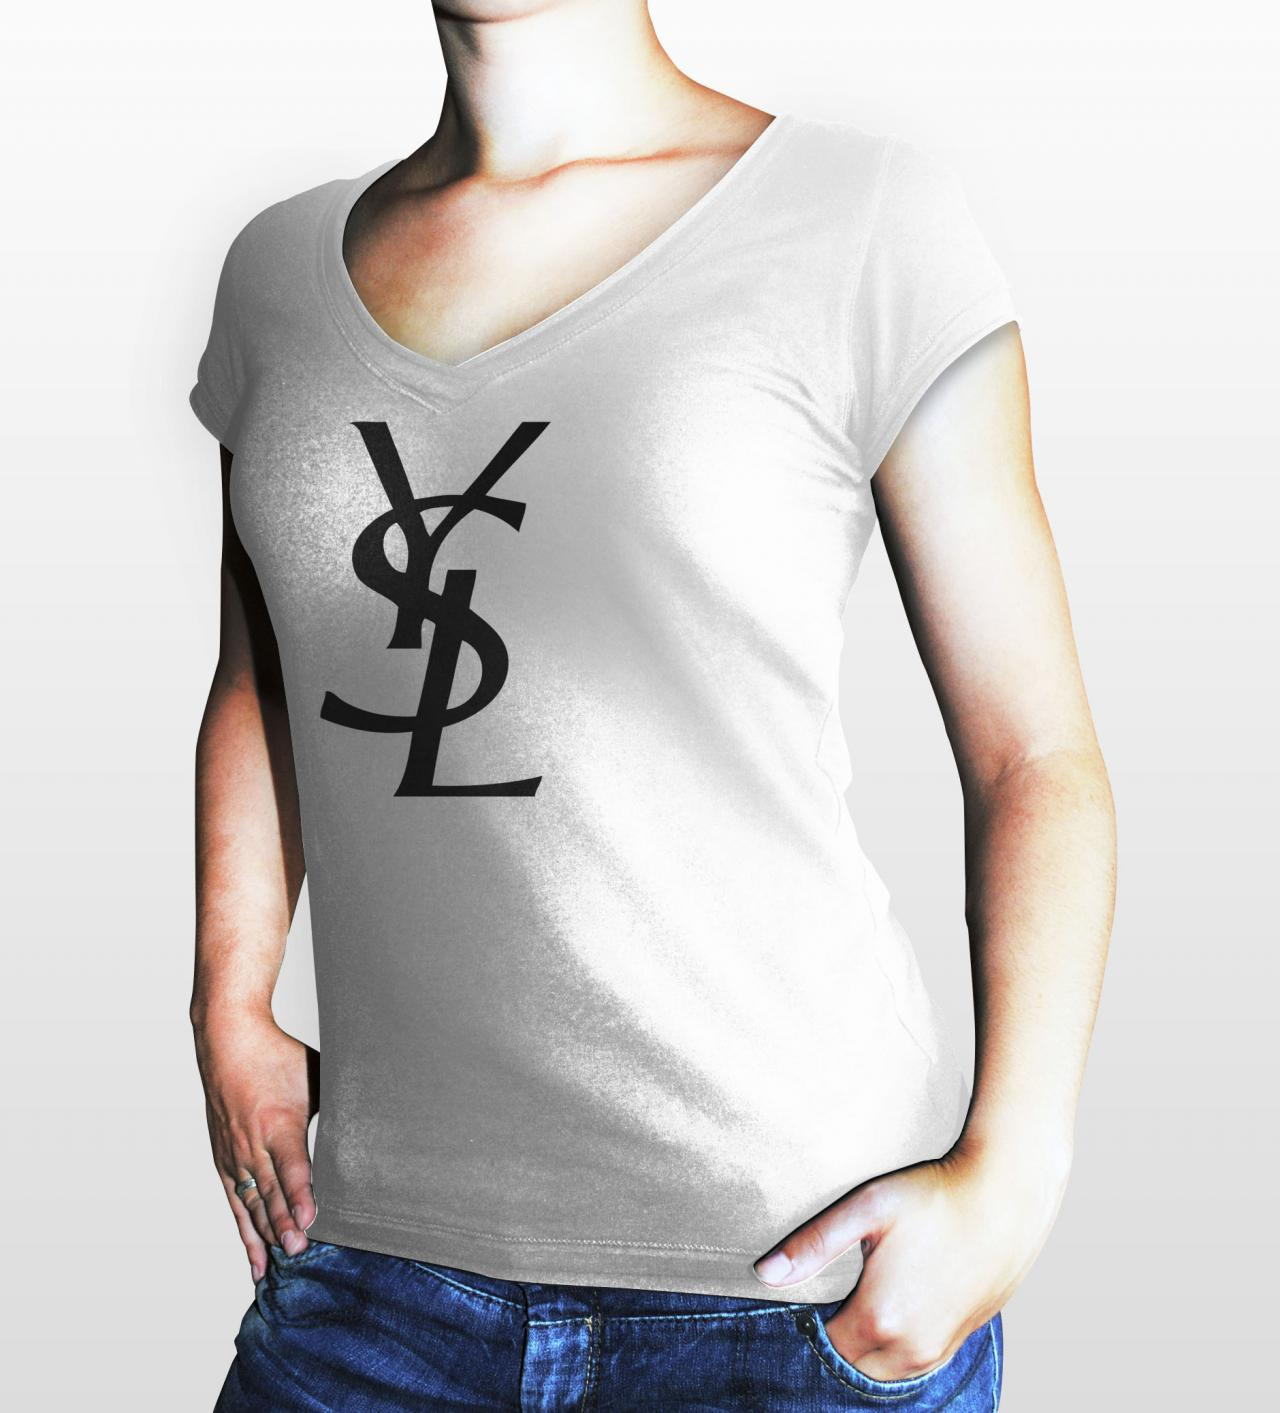 Ysl Yves Saint Laurent Paris Women White Gildan T Shirt On